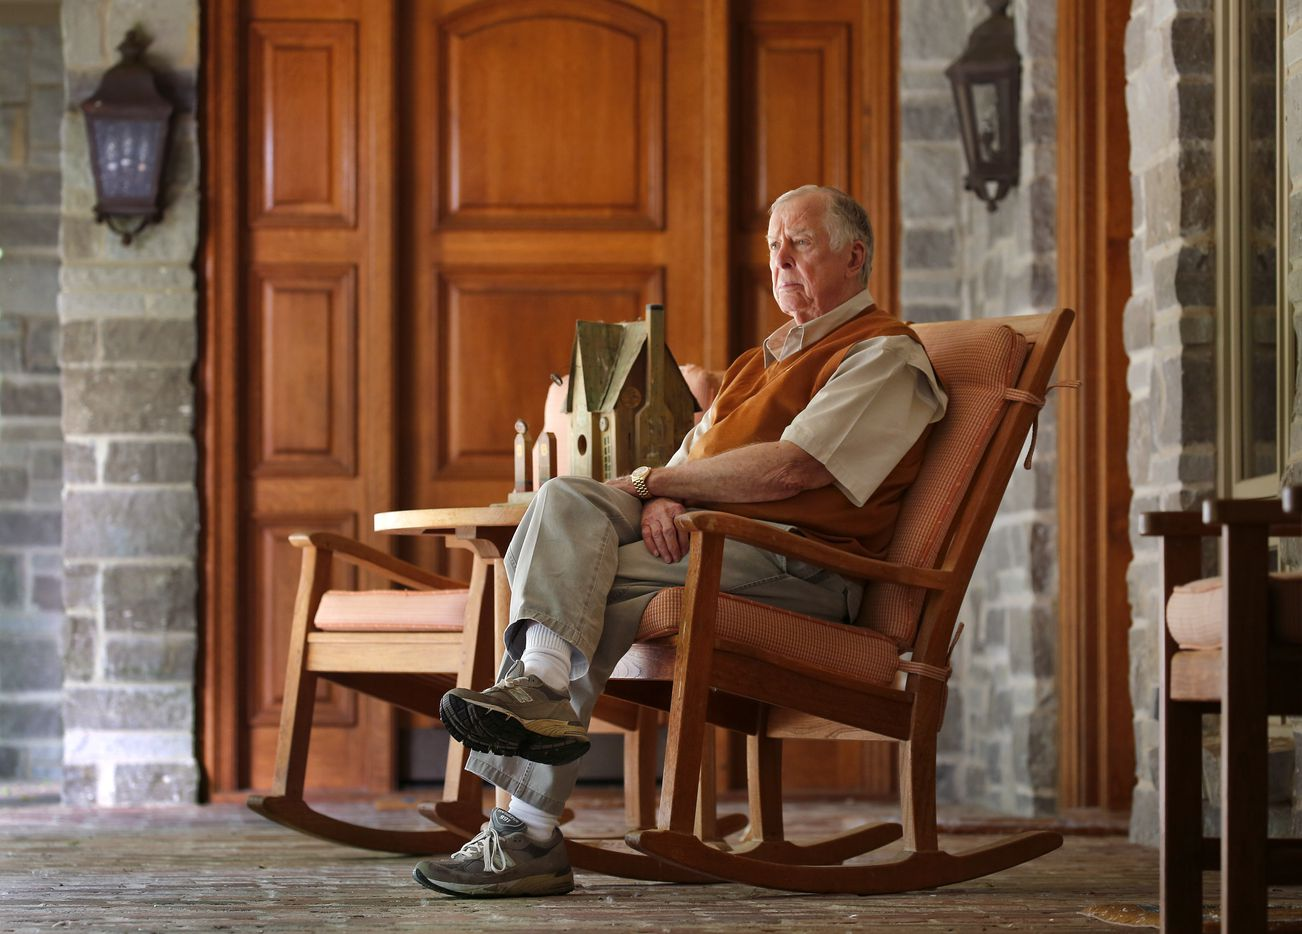 Dallas businessman and philanthropist T. Boone Pickens, on a patio at the lodge, acquired 68,000 acres along the Canadian River in Roberts County, where he's turned the Mesa Vista Ranch into an ideal habitat for quail.